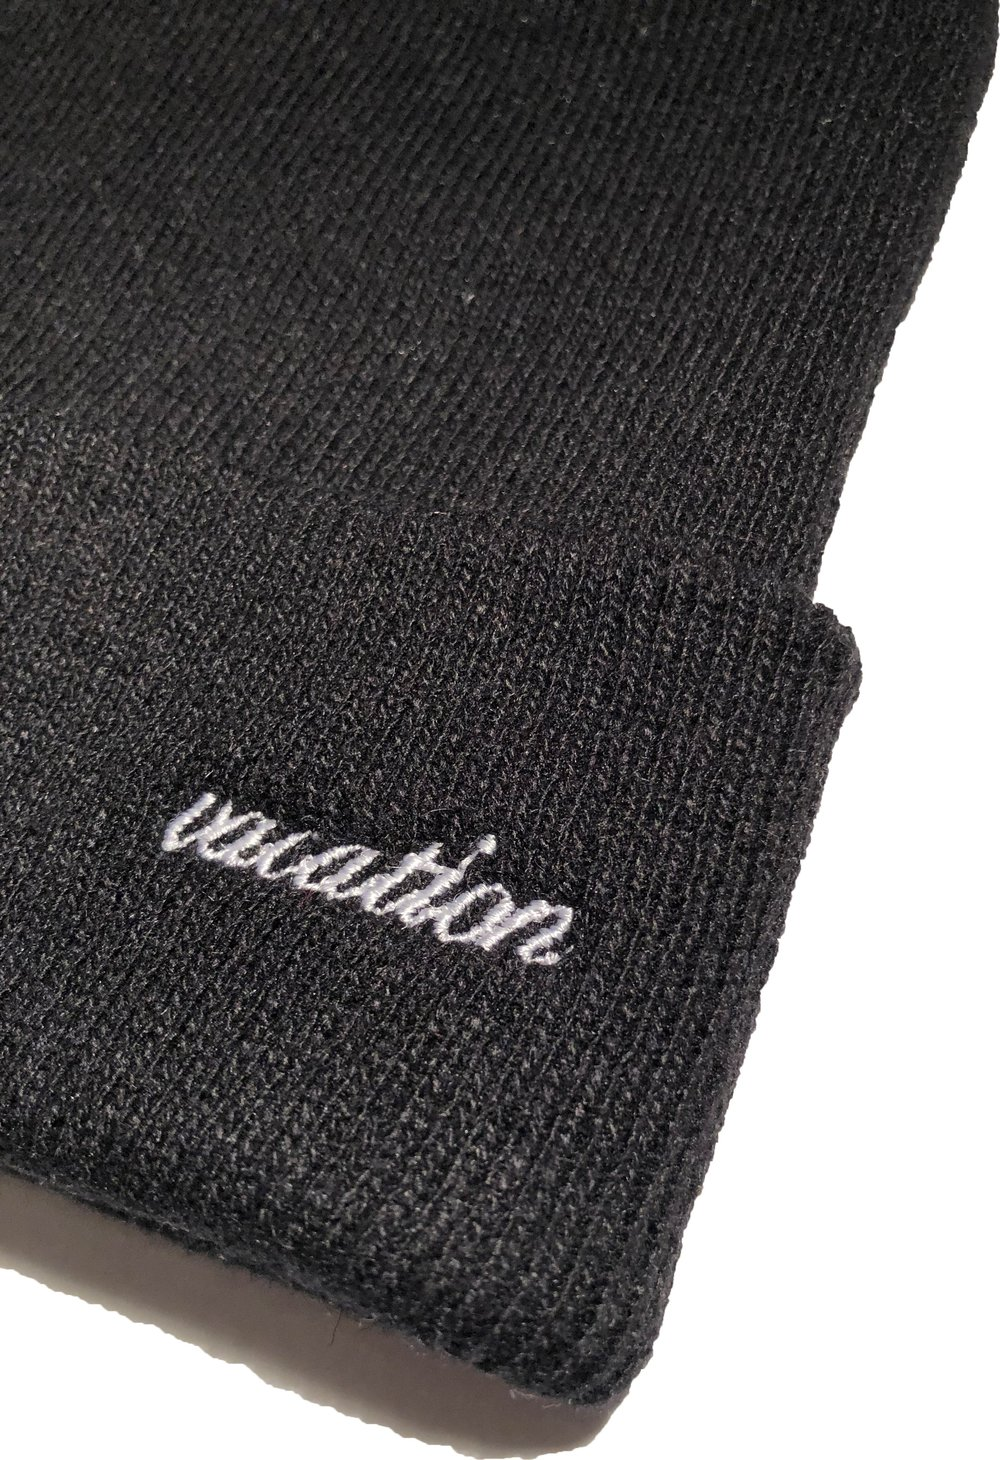 Vacation Winter '19 is here. - New 2019 Winter gear is here!Stay warm in all new Vacation beanies, crew sweaters and hoodies.